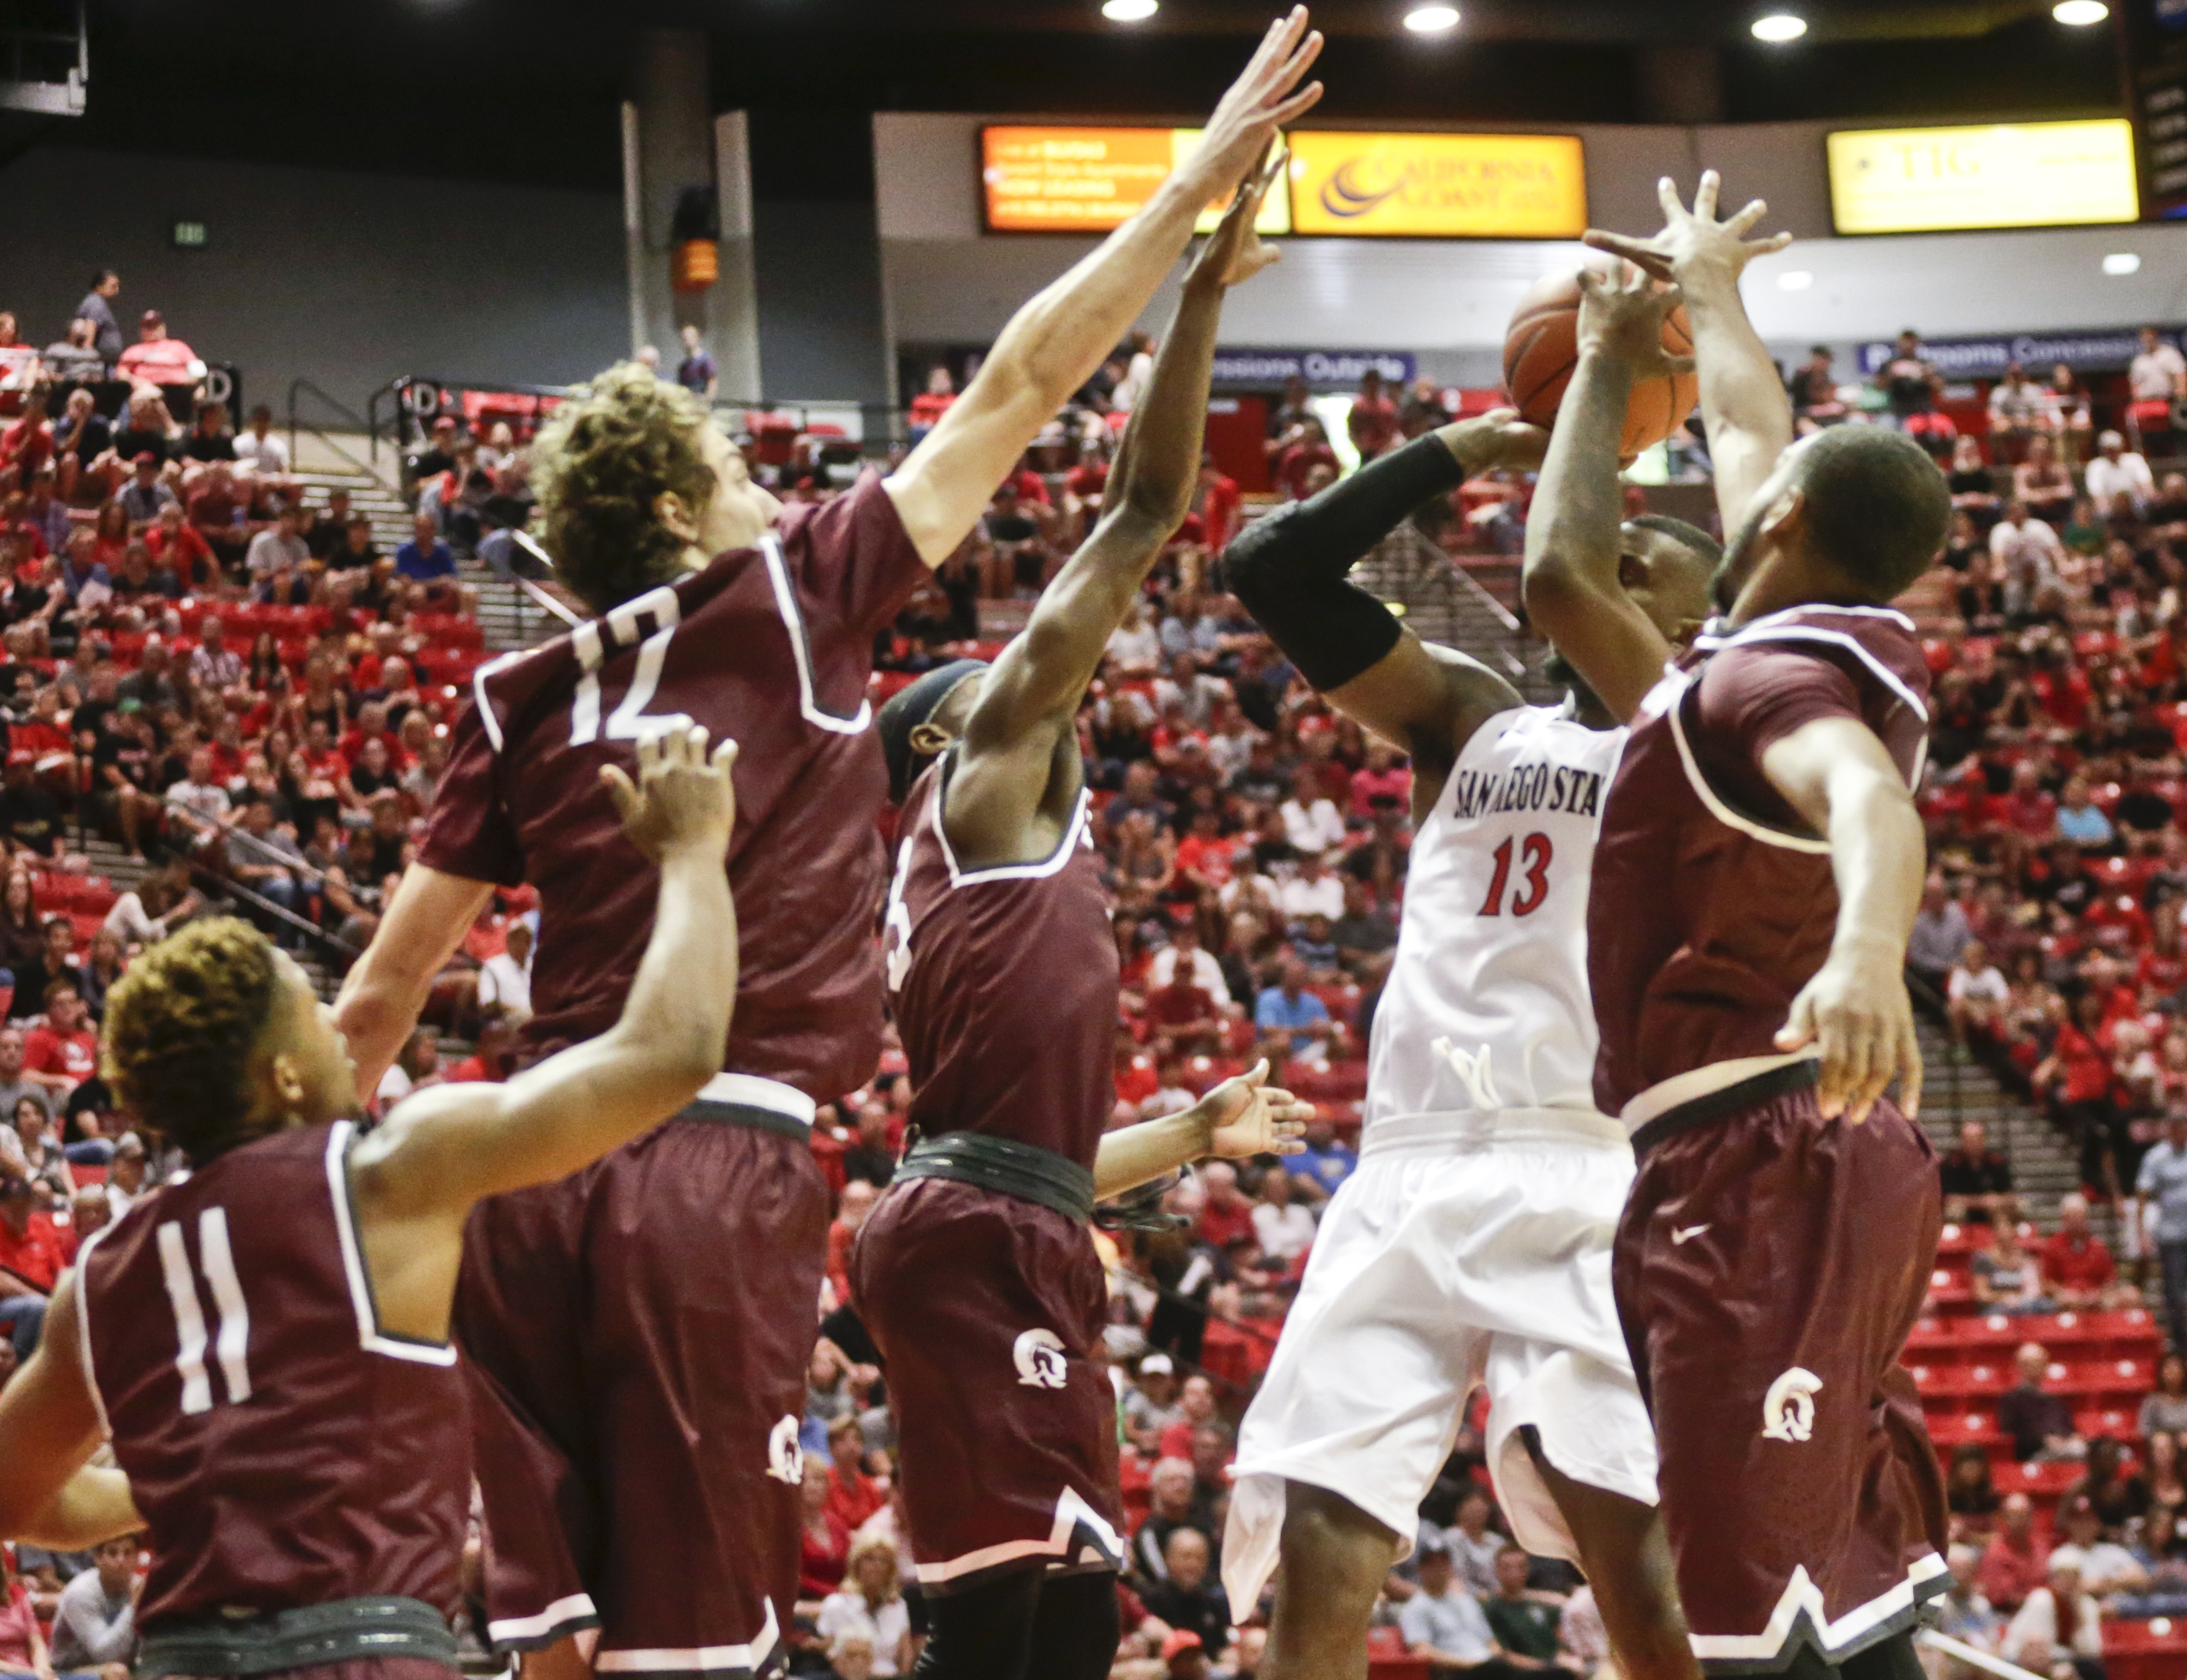 San Diego State forward Winston Shepard (13) has his shot blocked as he swarmed by four Arkansas-Little Rock defenders in the first half of an NCAA college basketball game Saturday, Nov. 21, 2015, in San Diego. (AP Photo/Lenny Ignelzi)